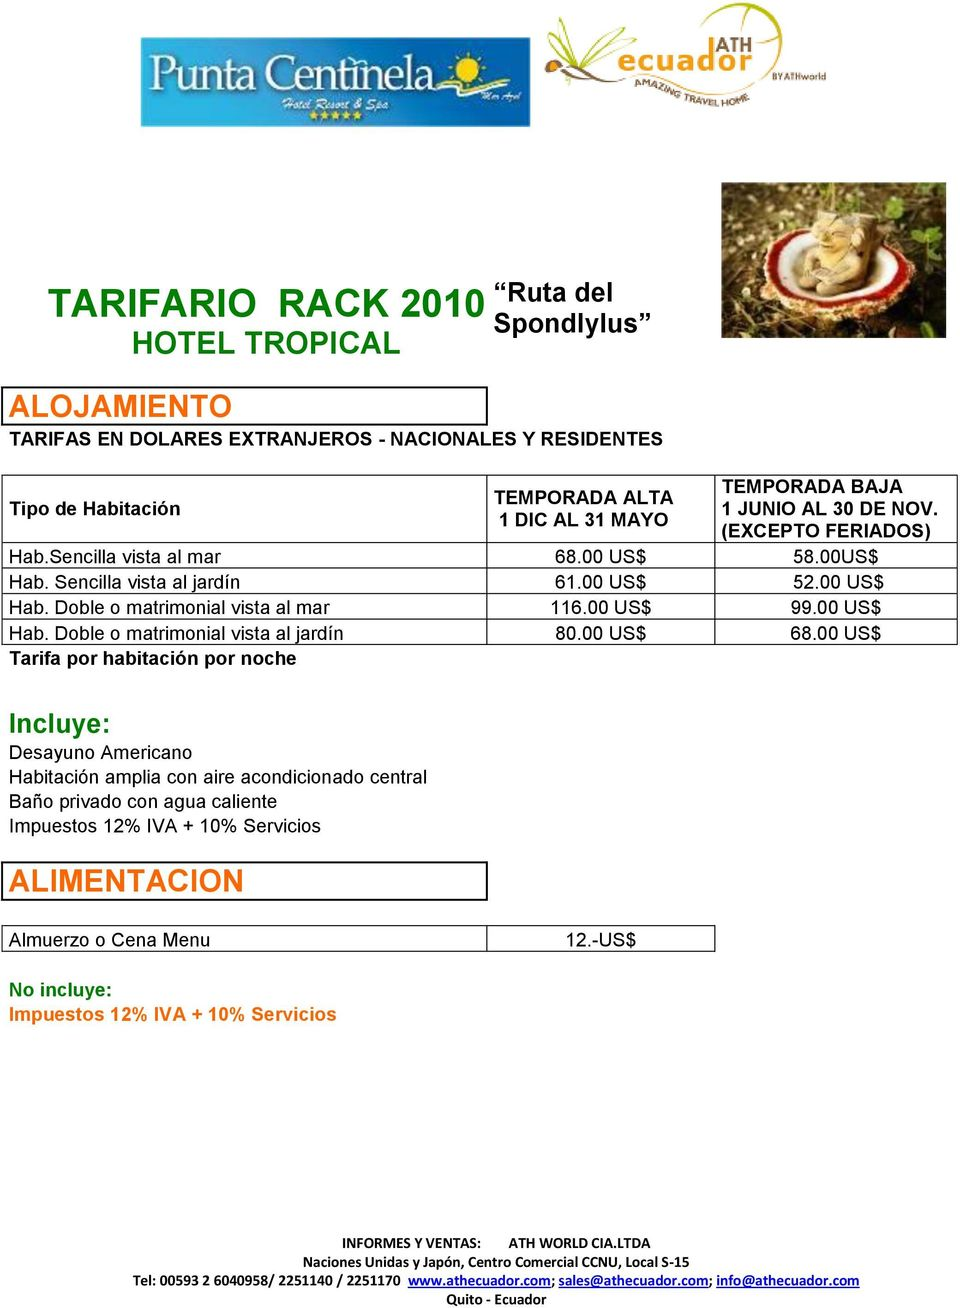 Doble o matrimonial vista al mar 116.00 US$ 99.00 US$ Hab. Doble o matrimonial vista al jardín 80.00 US$ 68.